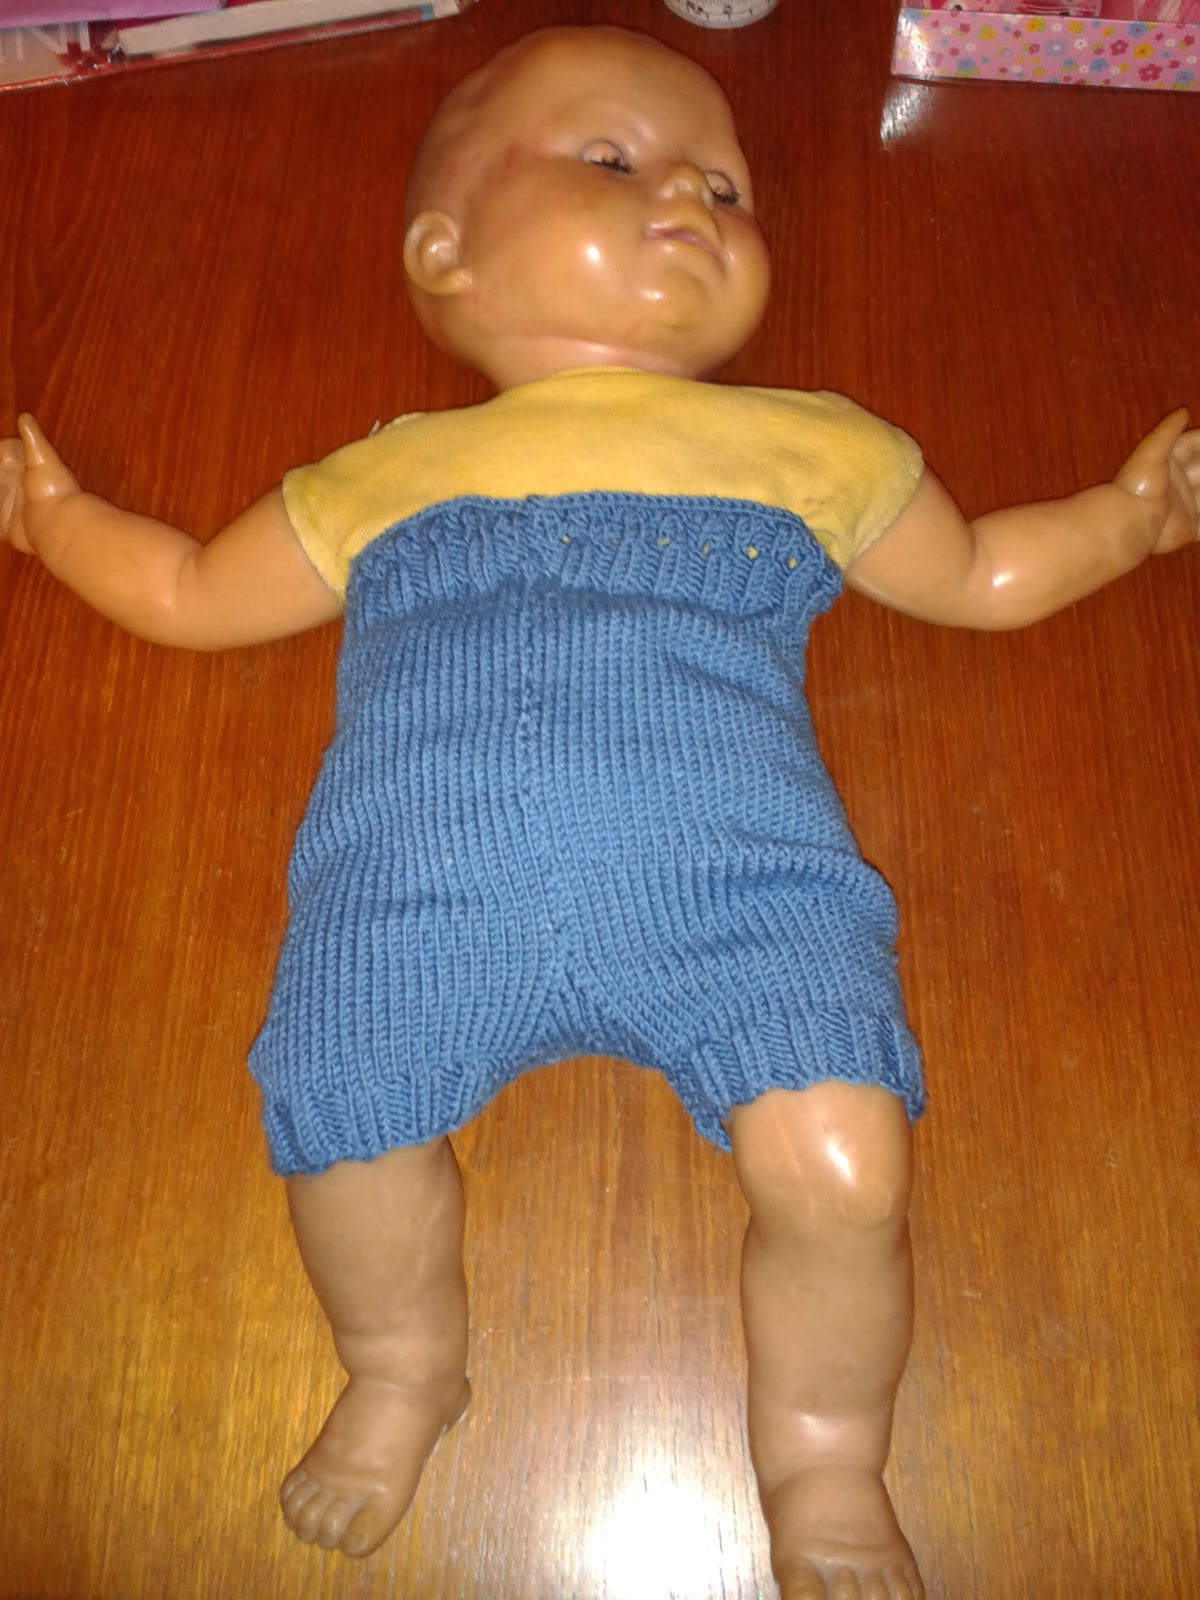 Blue knitted shorties, wool nappy cover on doll